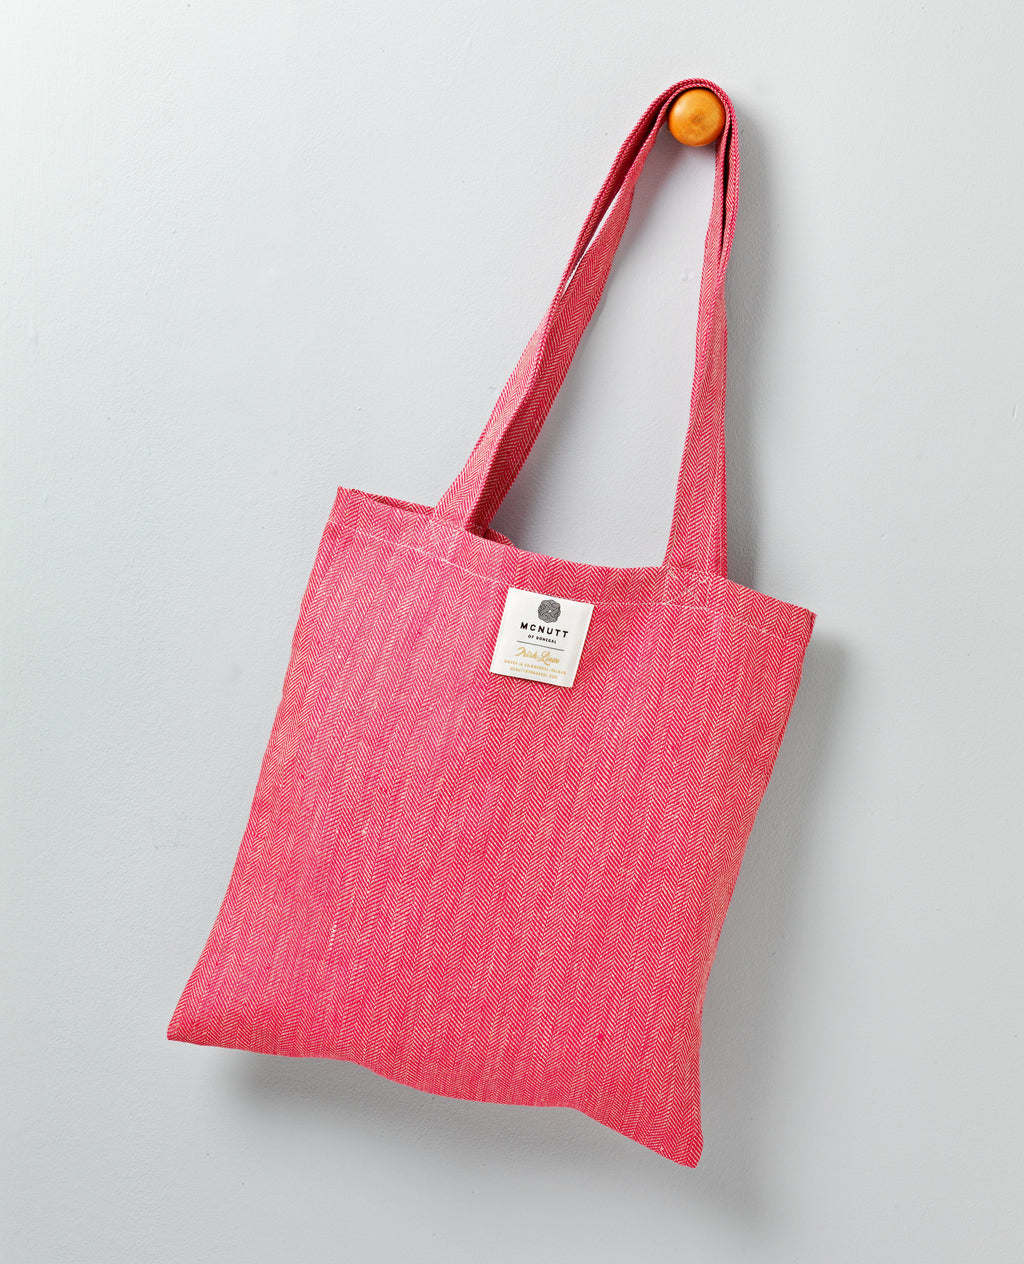 Linen Shopping bag by Mc Nutt